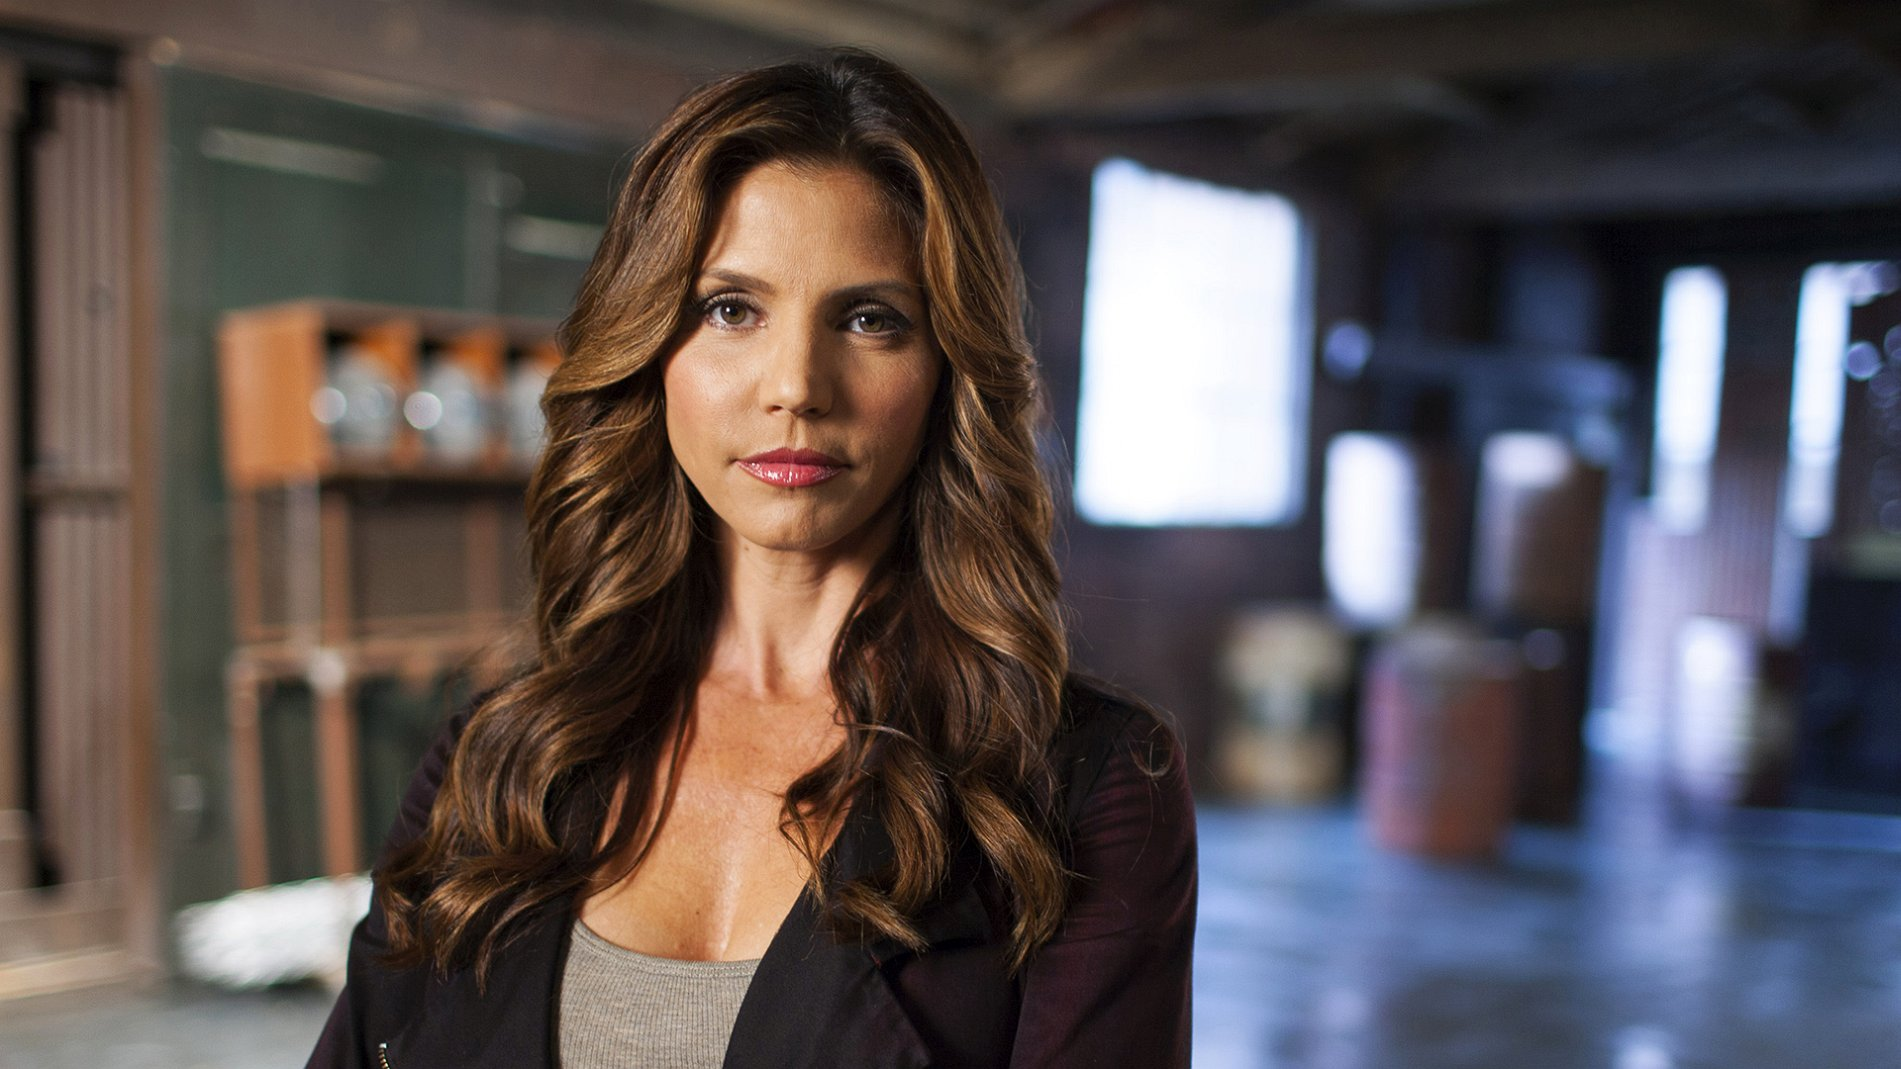 Michelle Mulan Charisma Carpenter during Opening Credits First Glance at Ryan Black Bryce Draper Stripping In the Dungeon Carol 2015